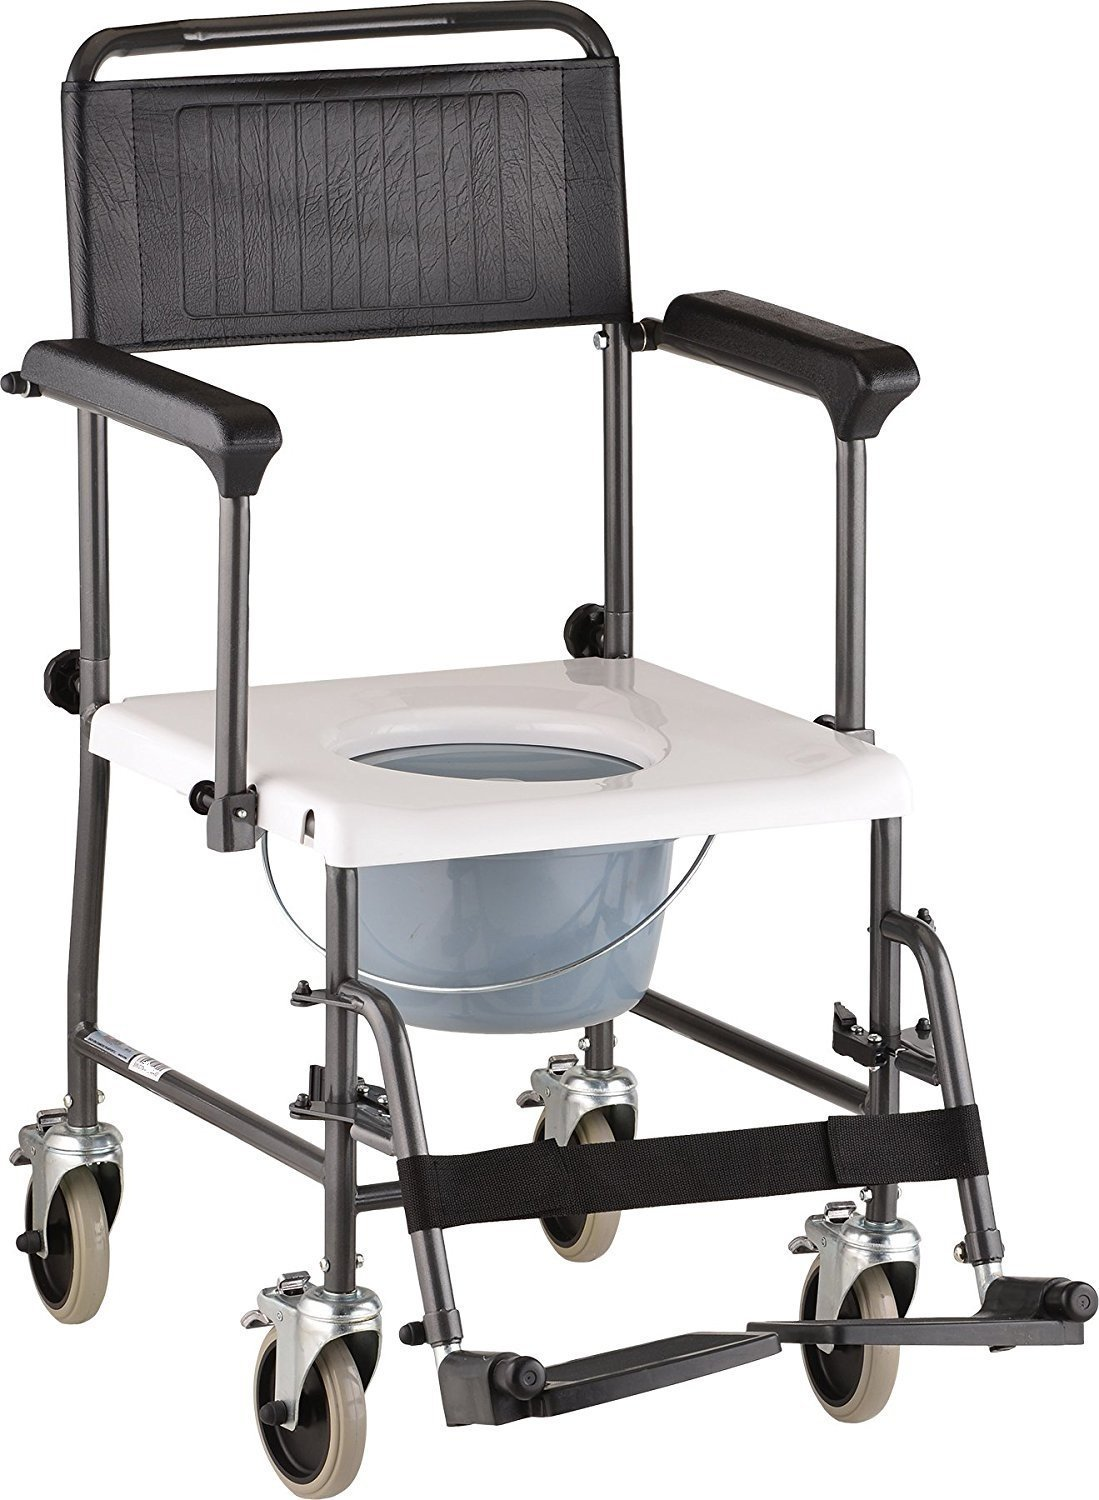 Caremax Bedside Transport Chair Commode by Caremax- Mobility Aid for Adult, Senior, Elderly & Handicap - Aluminum Transport Chair by CareMax